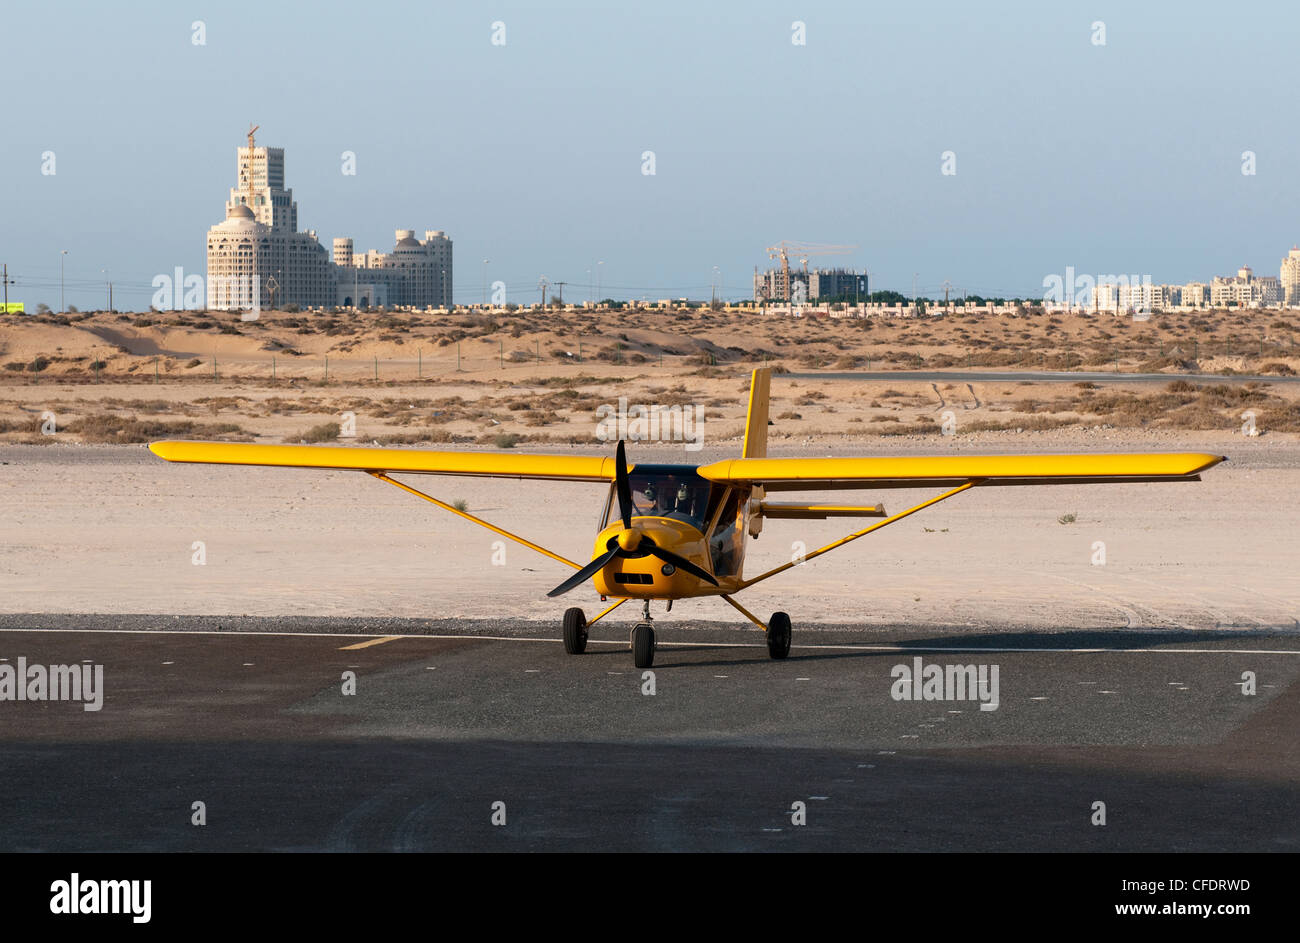 The Aeroprakt A-22 Foxbat is a two seat, high-wing, tricycle gear ultralight aircraft, United Arab Emirates - Stock Image